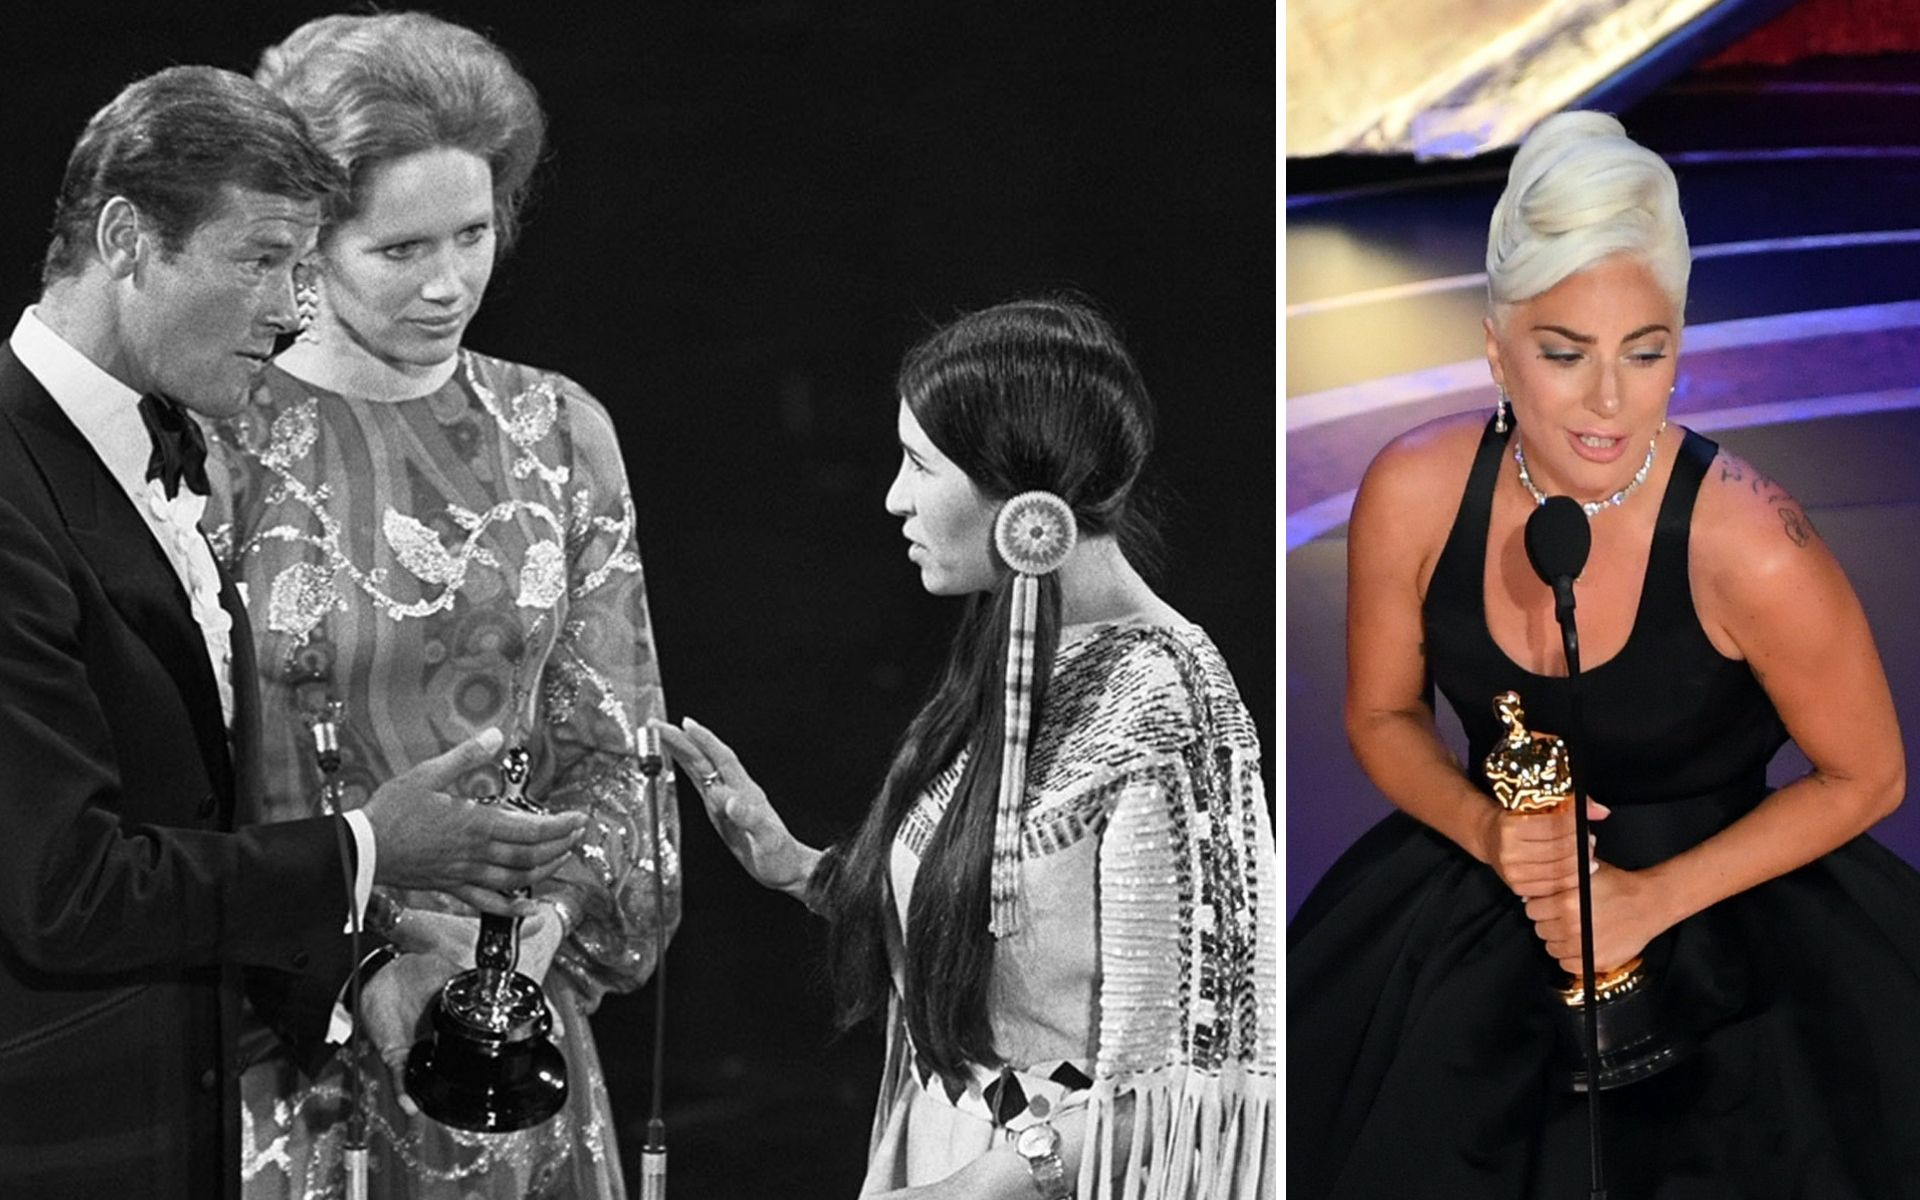 Sacheen Littlefeather and Lady Gaga